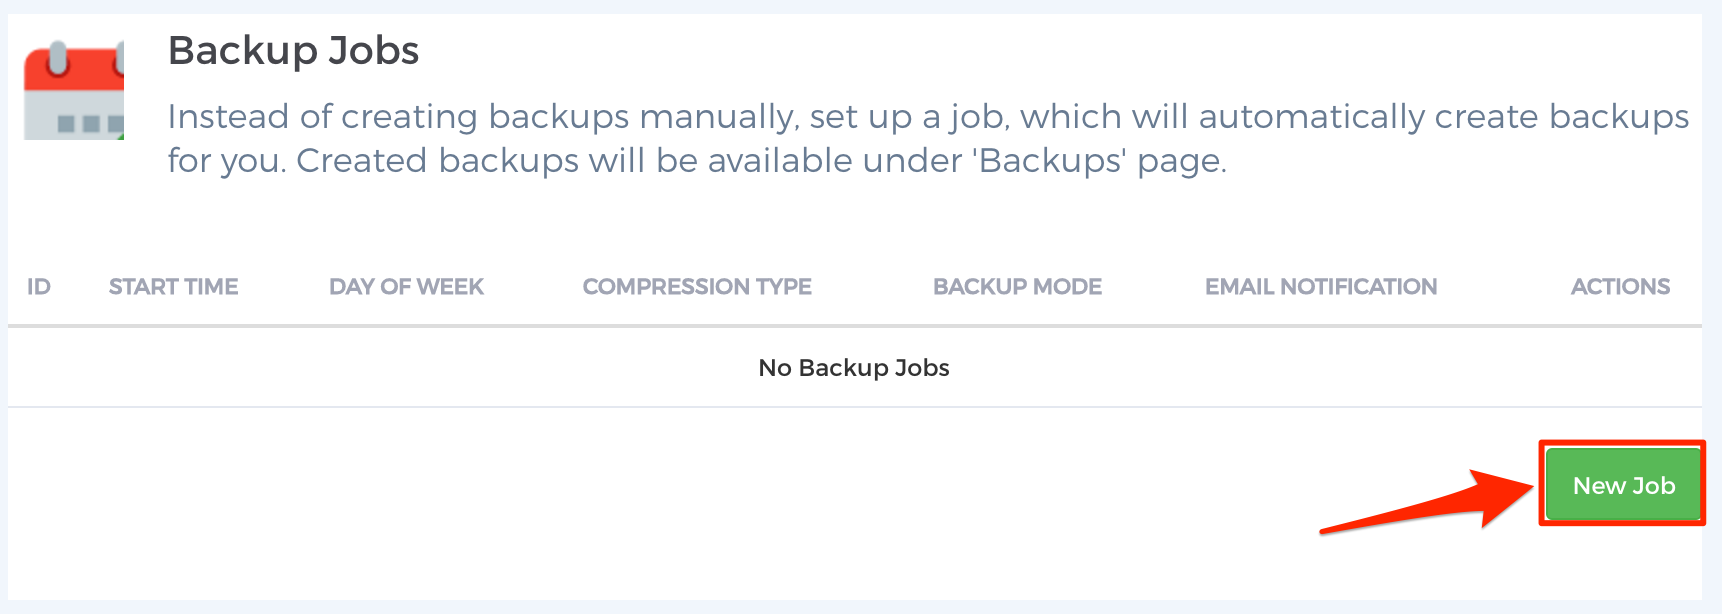 Step 4 - Scheduled Backups